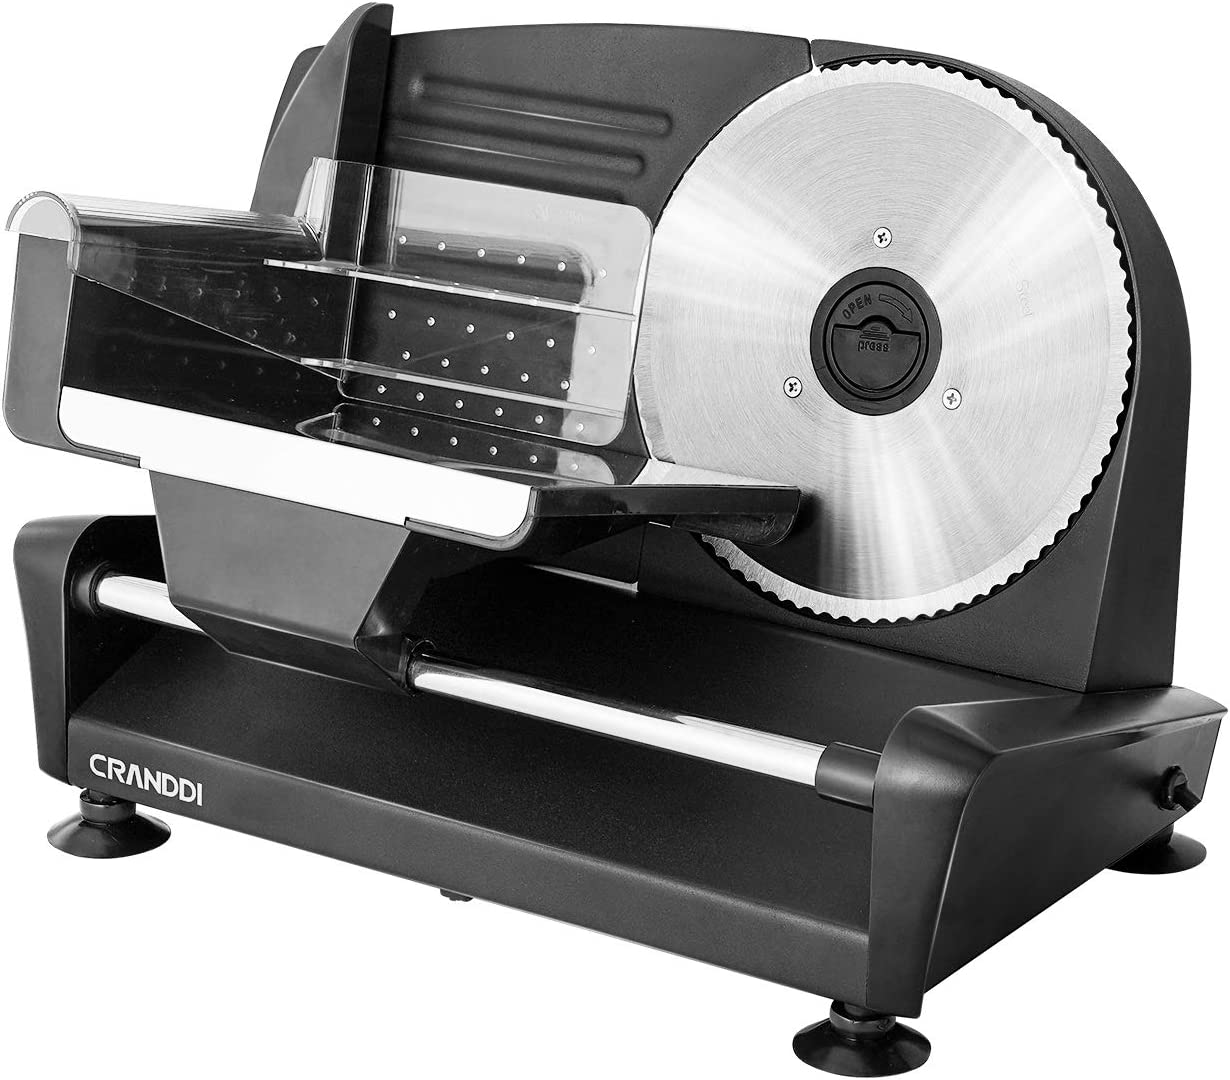 Electric Deli Food Slicer, CRANDDI Meat Slicer with 7.5'' Stainless Steel Blade, Adjustable Thickness Knob Perfect for Deli Ham, Cheese, Bread, Food Pusher & Non-slip Feet, Slicer Machine for Home Use